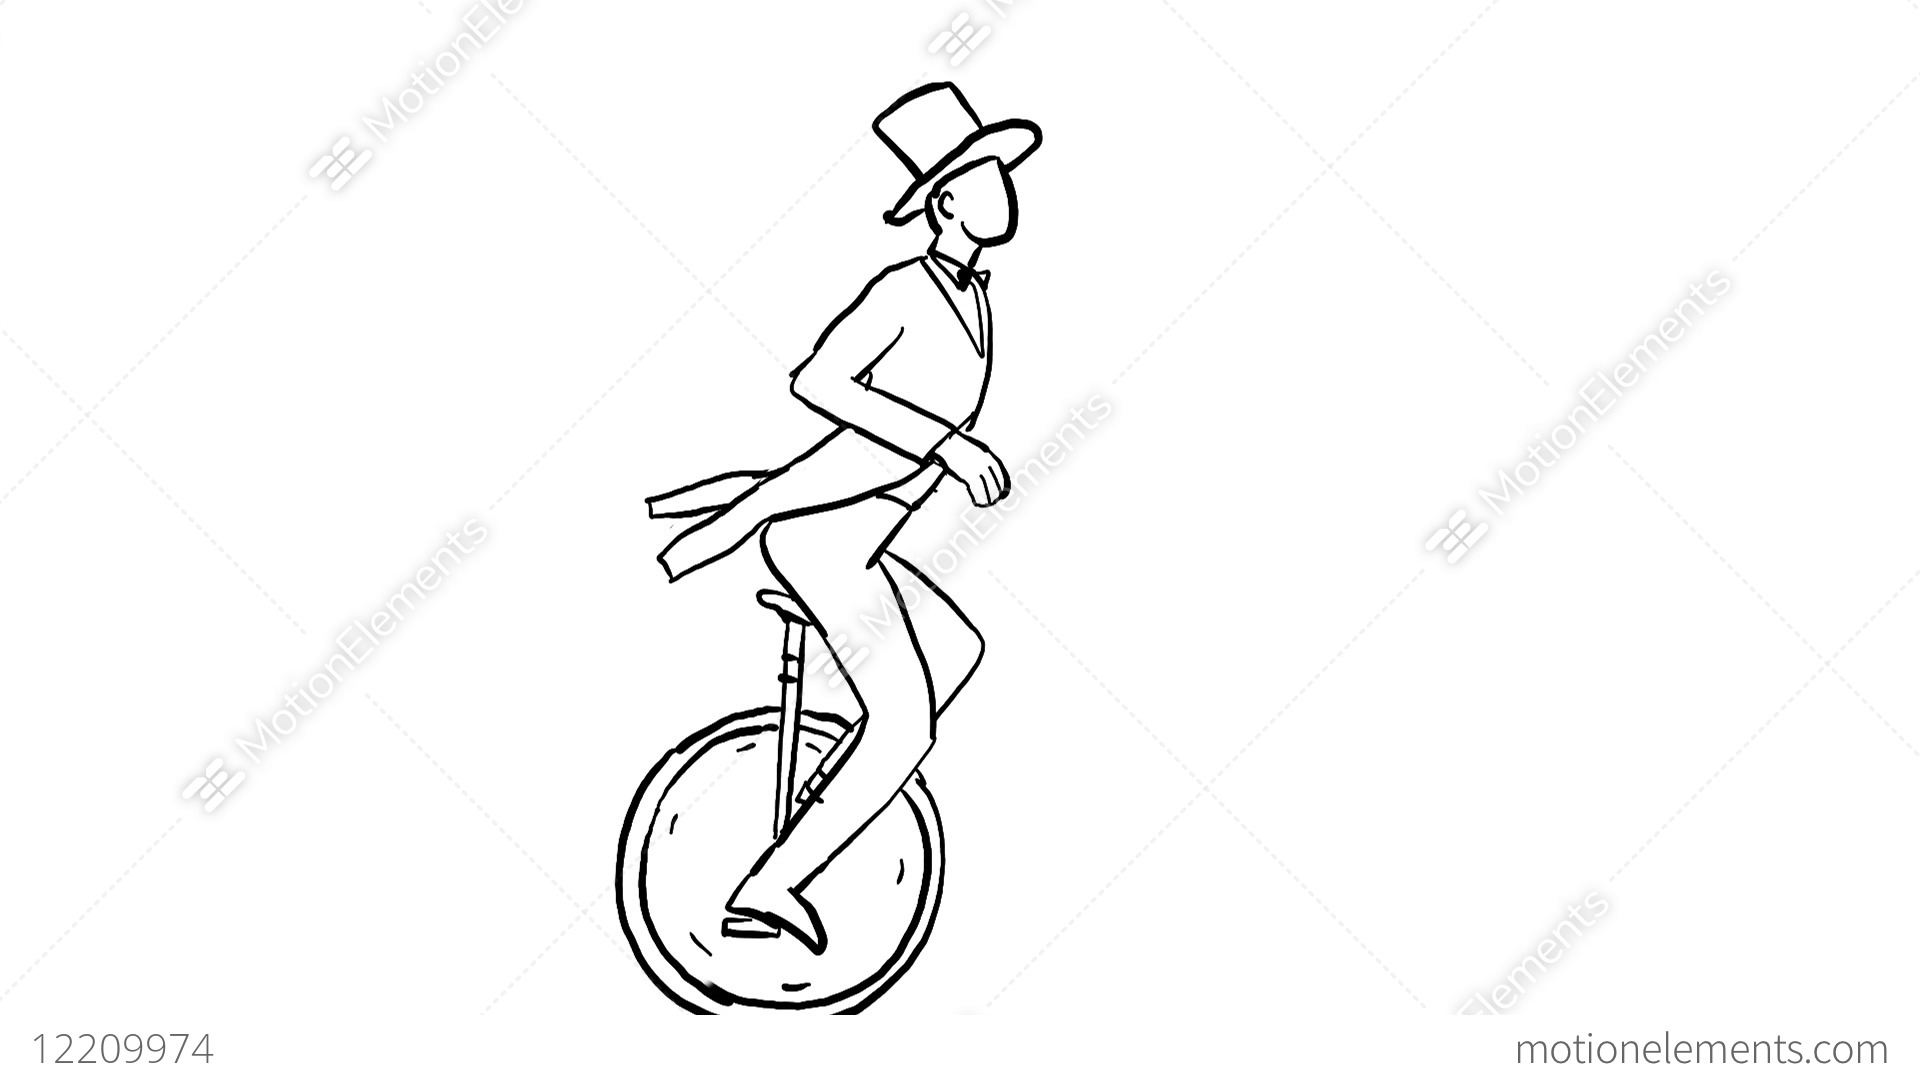 clipart library stock Unicycle drawing circus. At paintingvalley com explore